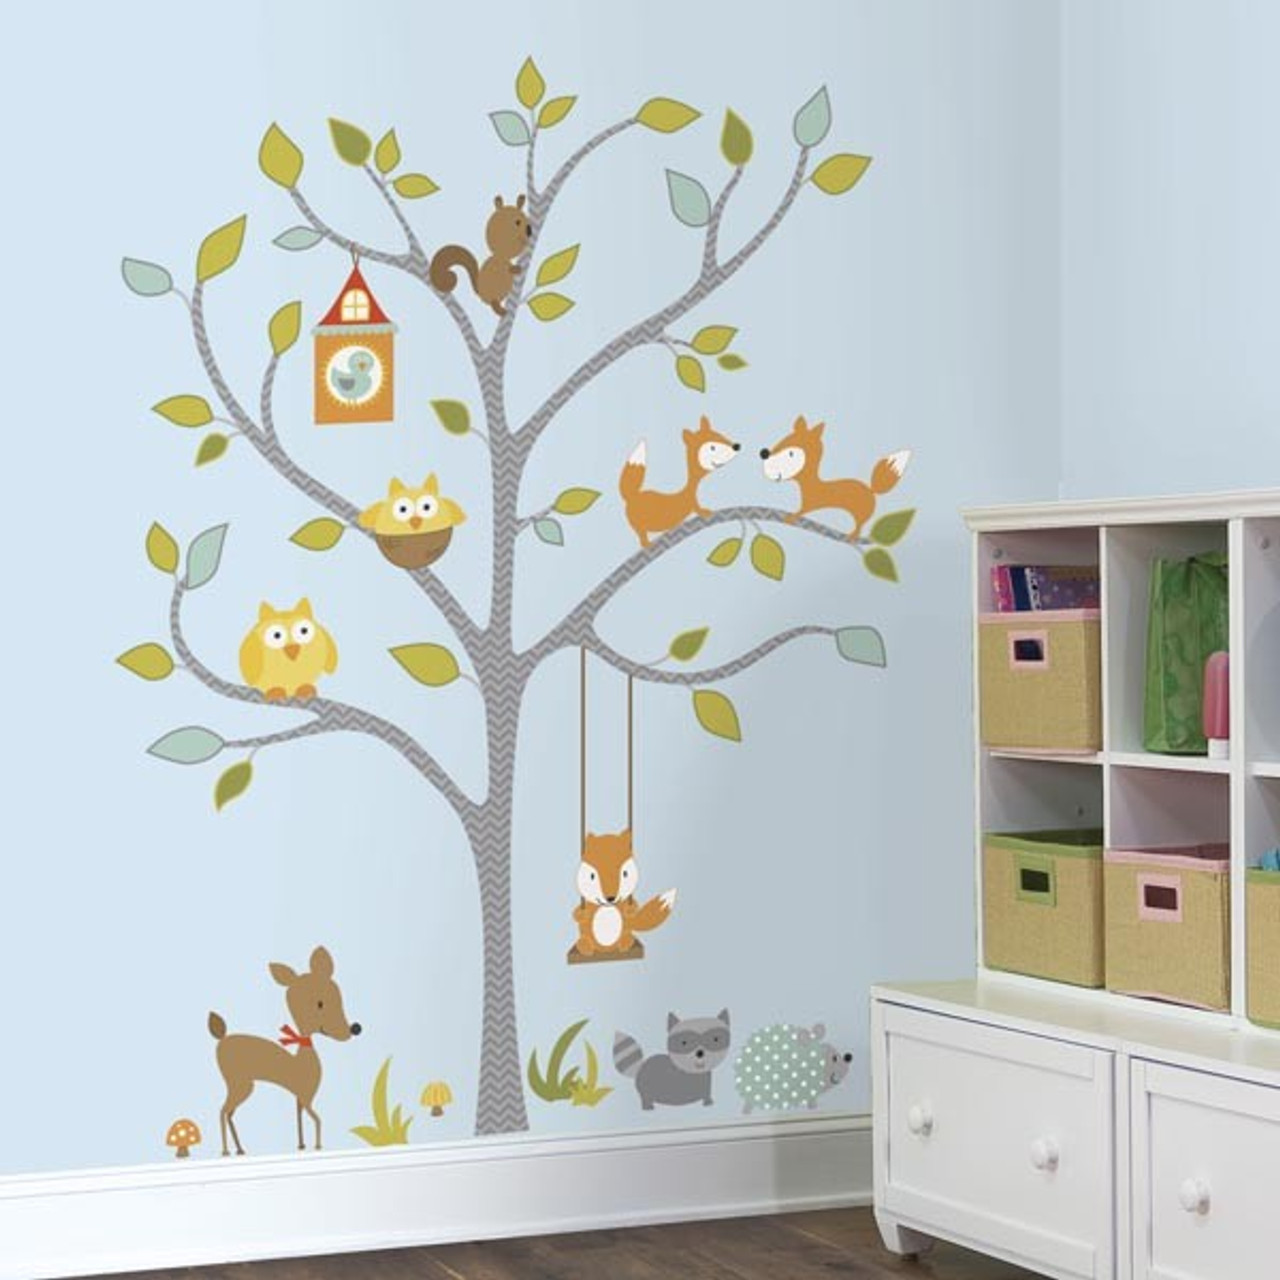 225 & Woodland Fox and Friends Giant Tree Wall Stickers